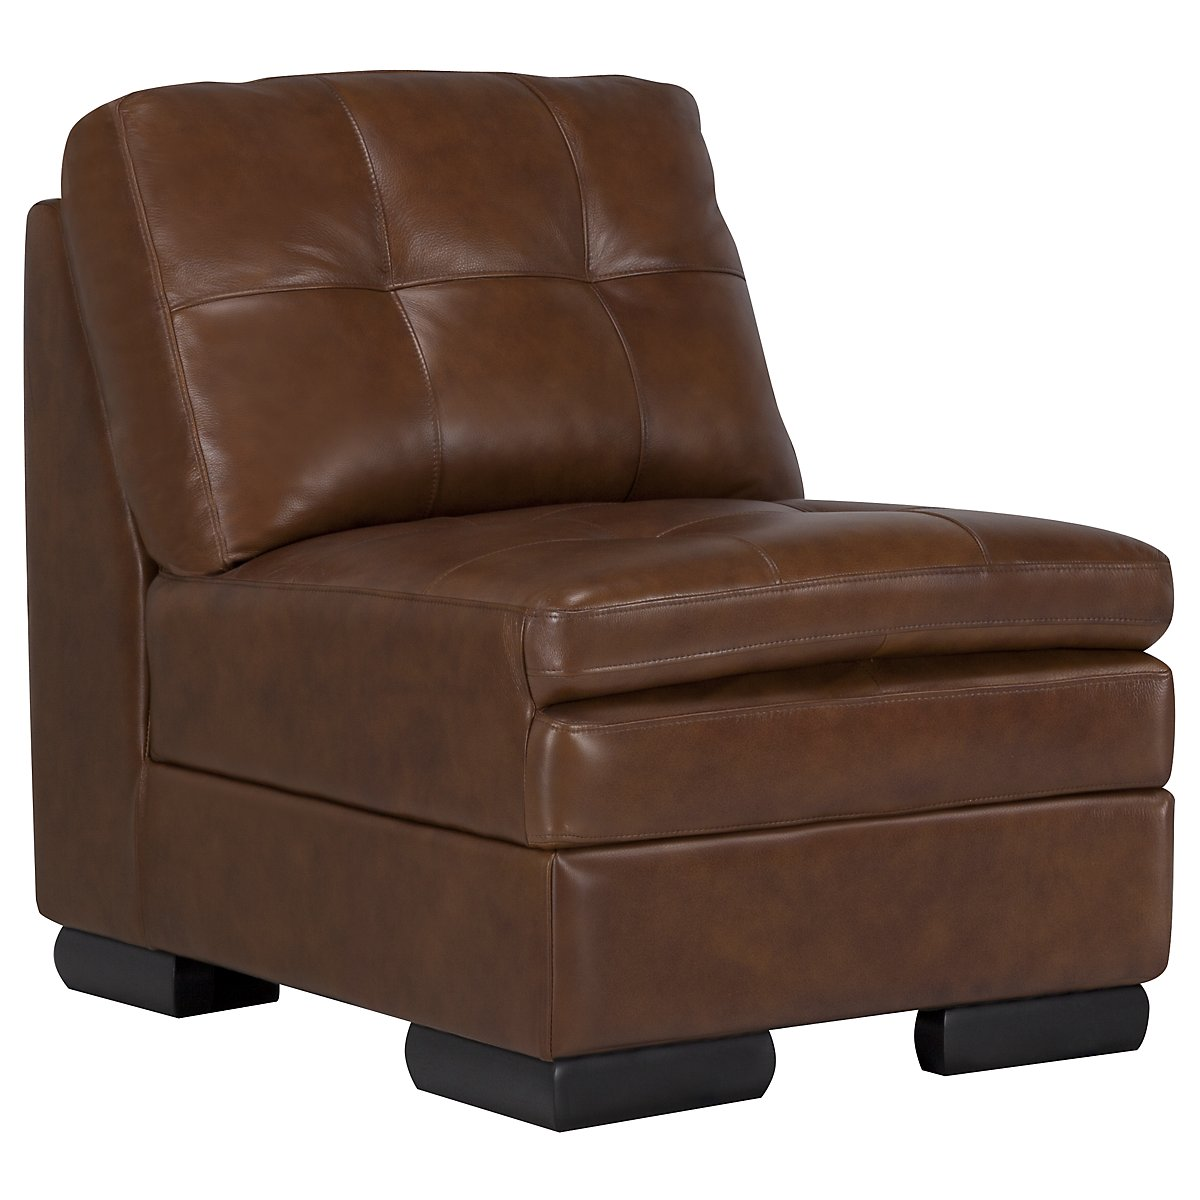 Trevor Md Brown Leather Accent Chair